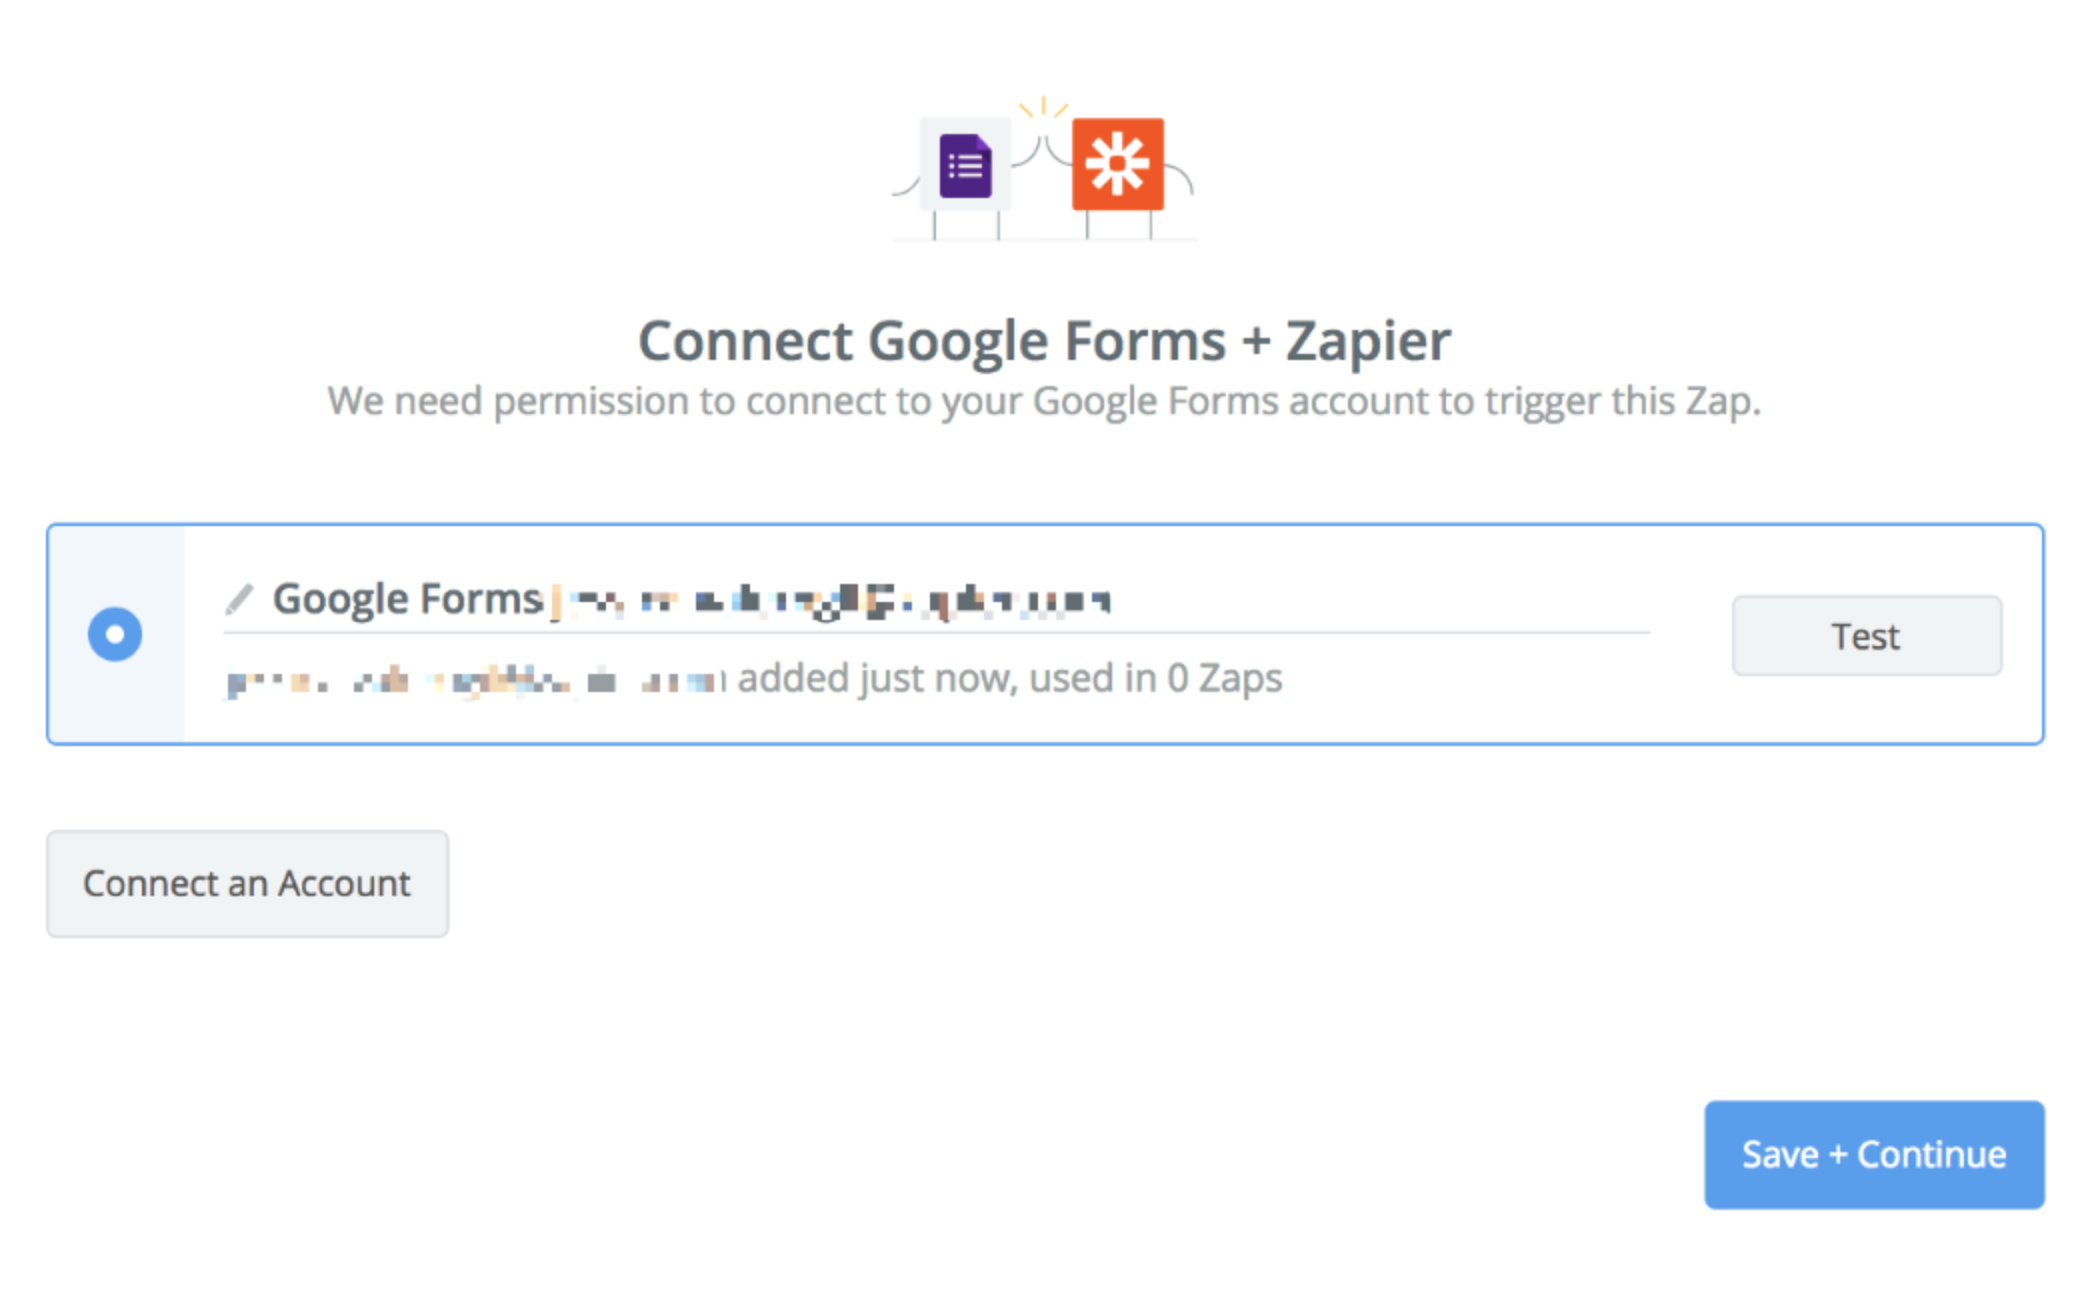 Google Forms connection successfull